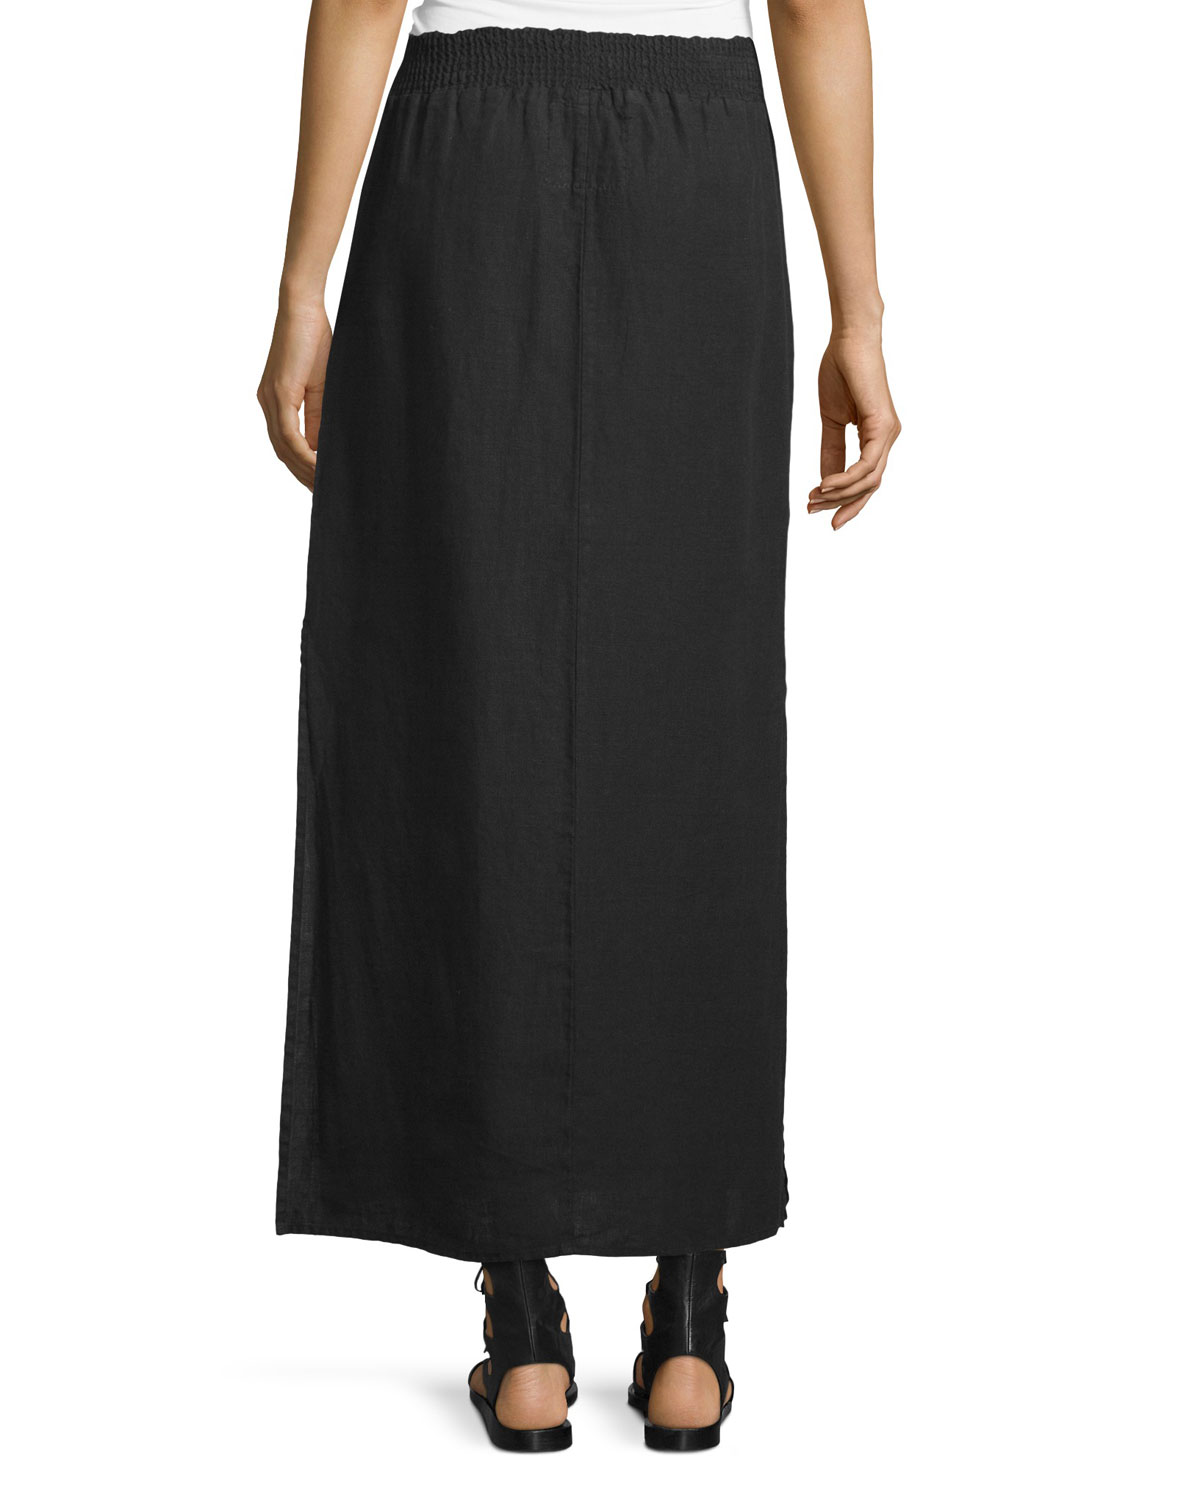 bd3c353a8 JWLA for Johnny Was Zona Embroidered Maxi Skirt, Black | Neiman Marcus